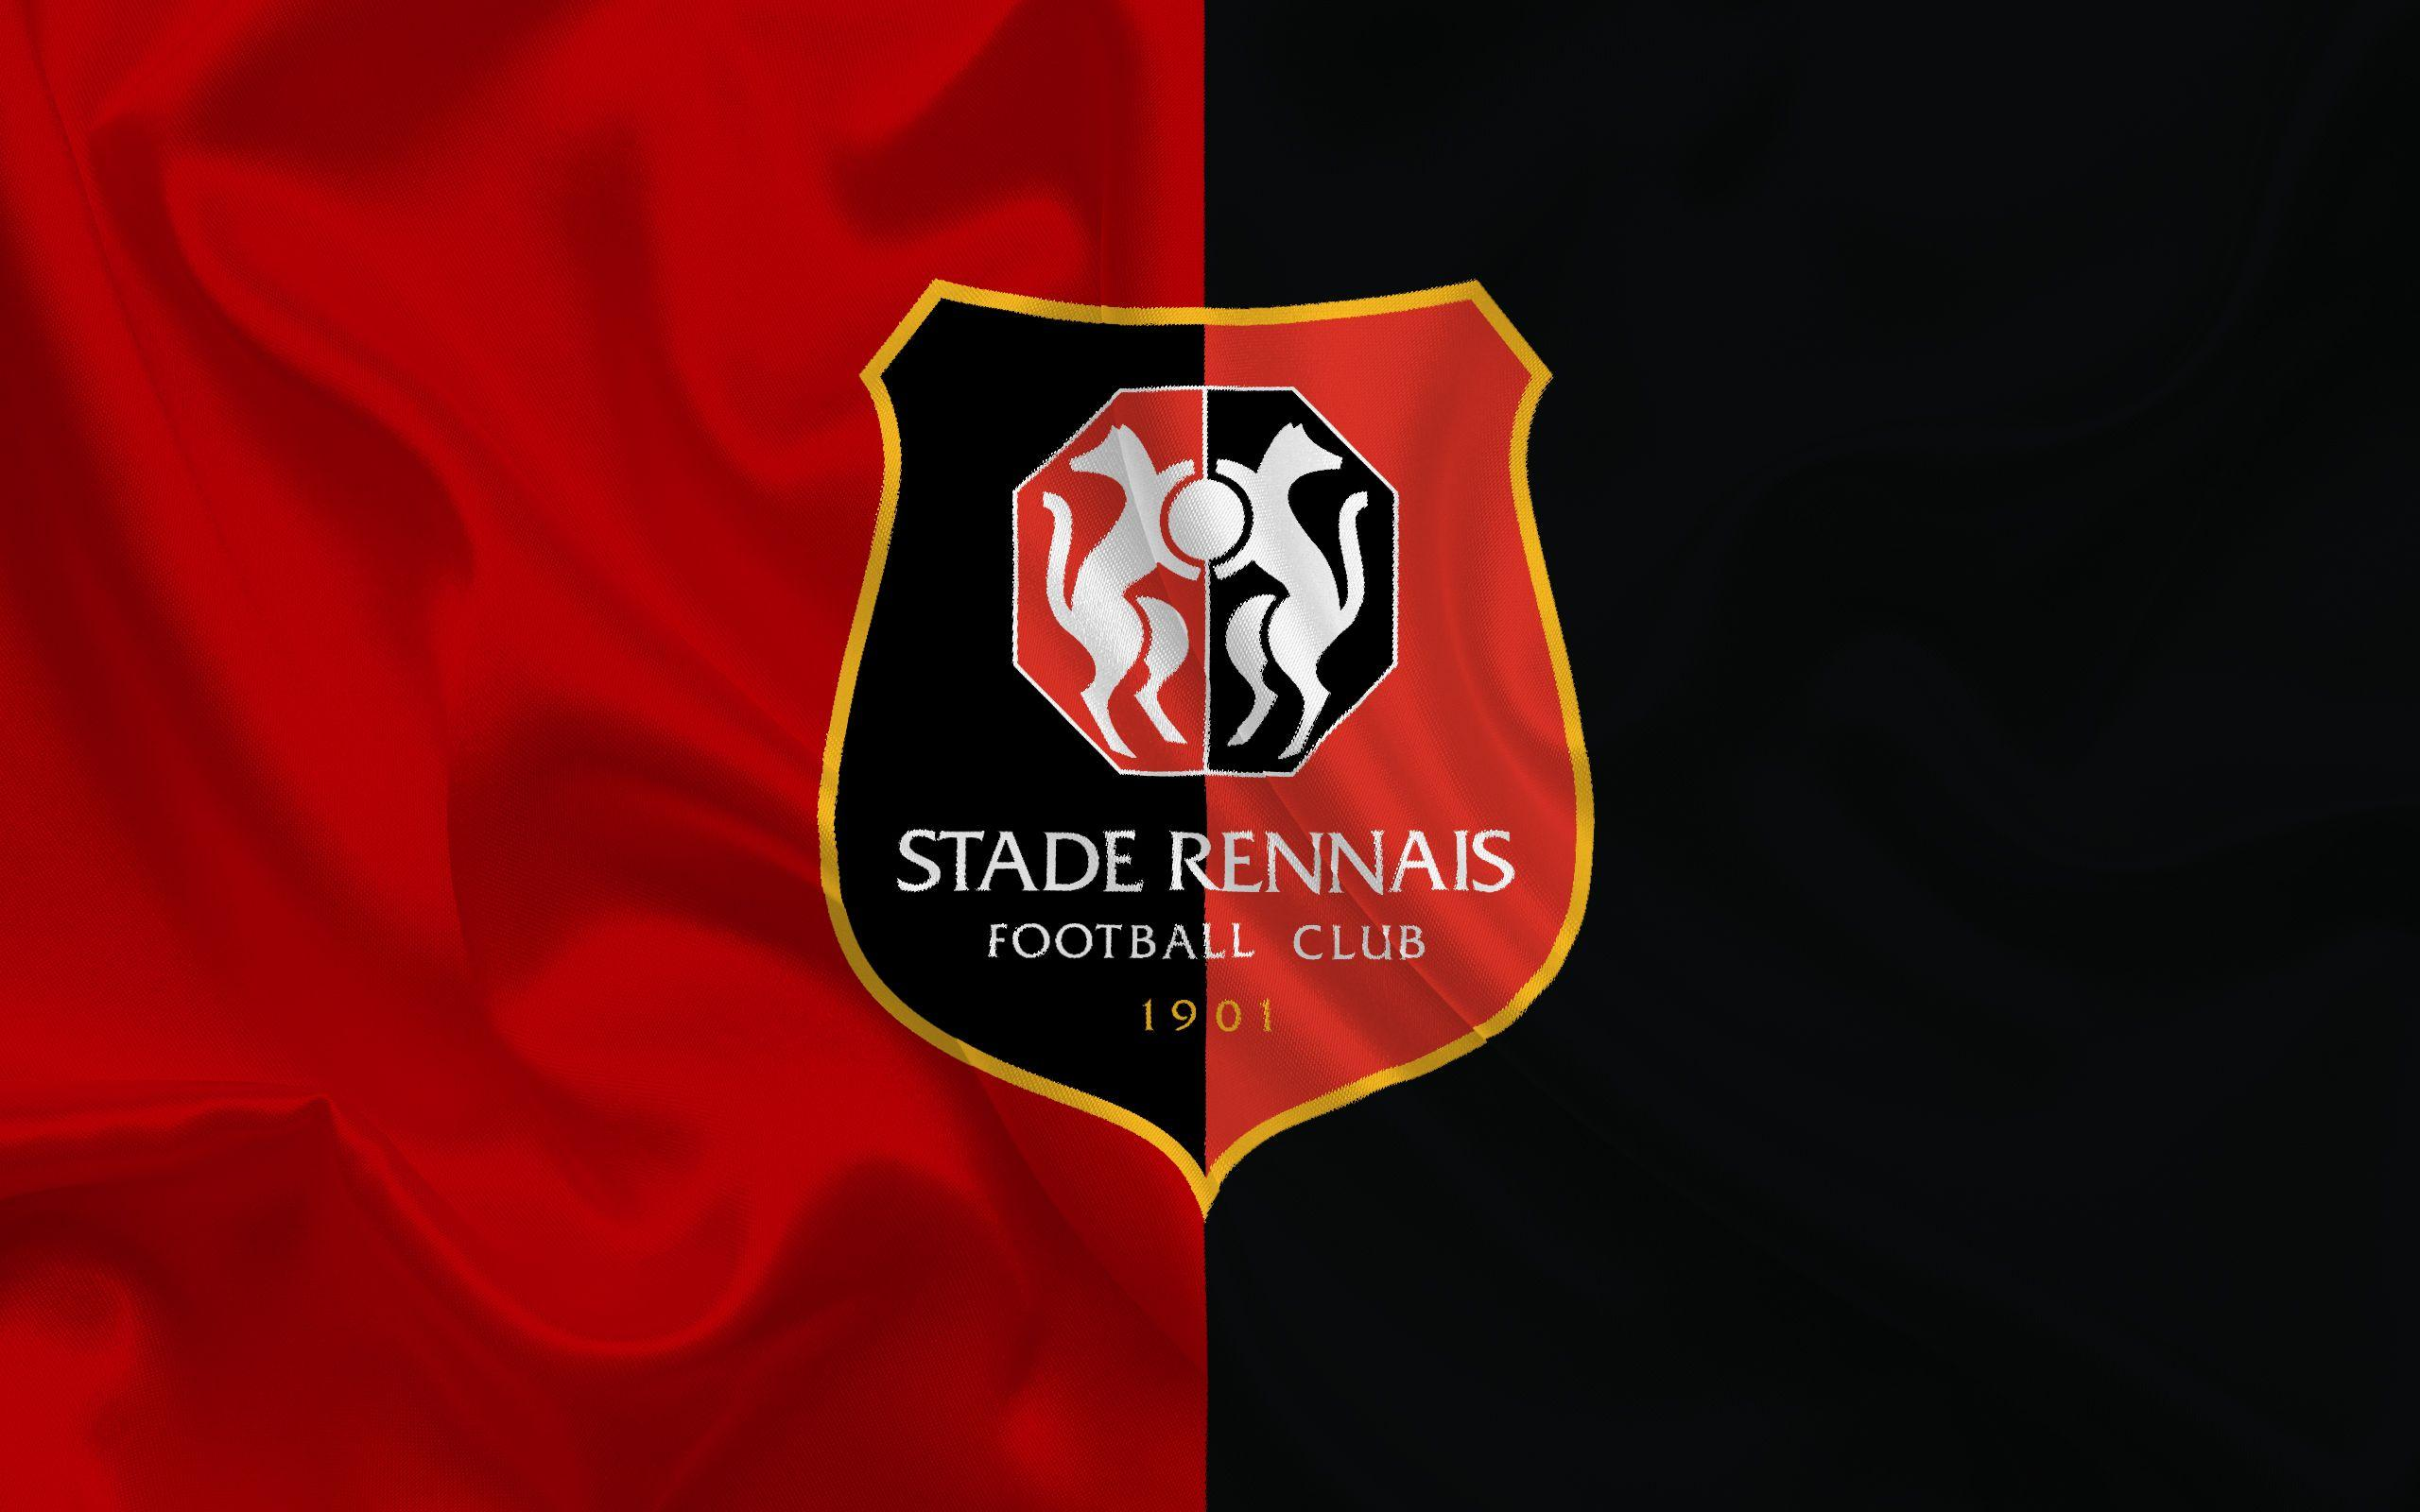 Download wallpapers Stade Rennais Football Club, Football club